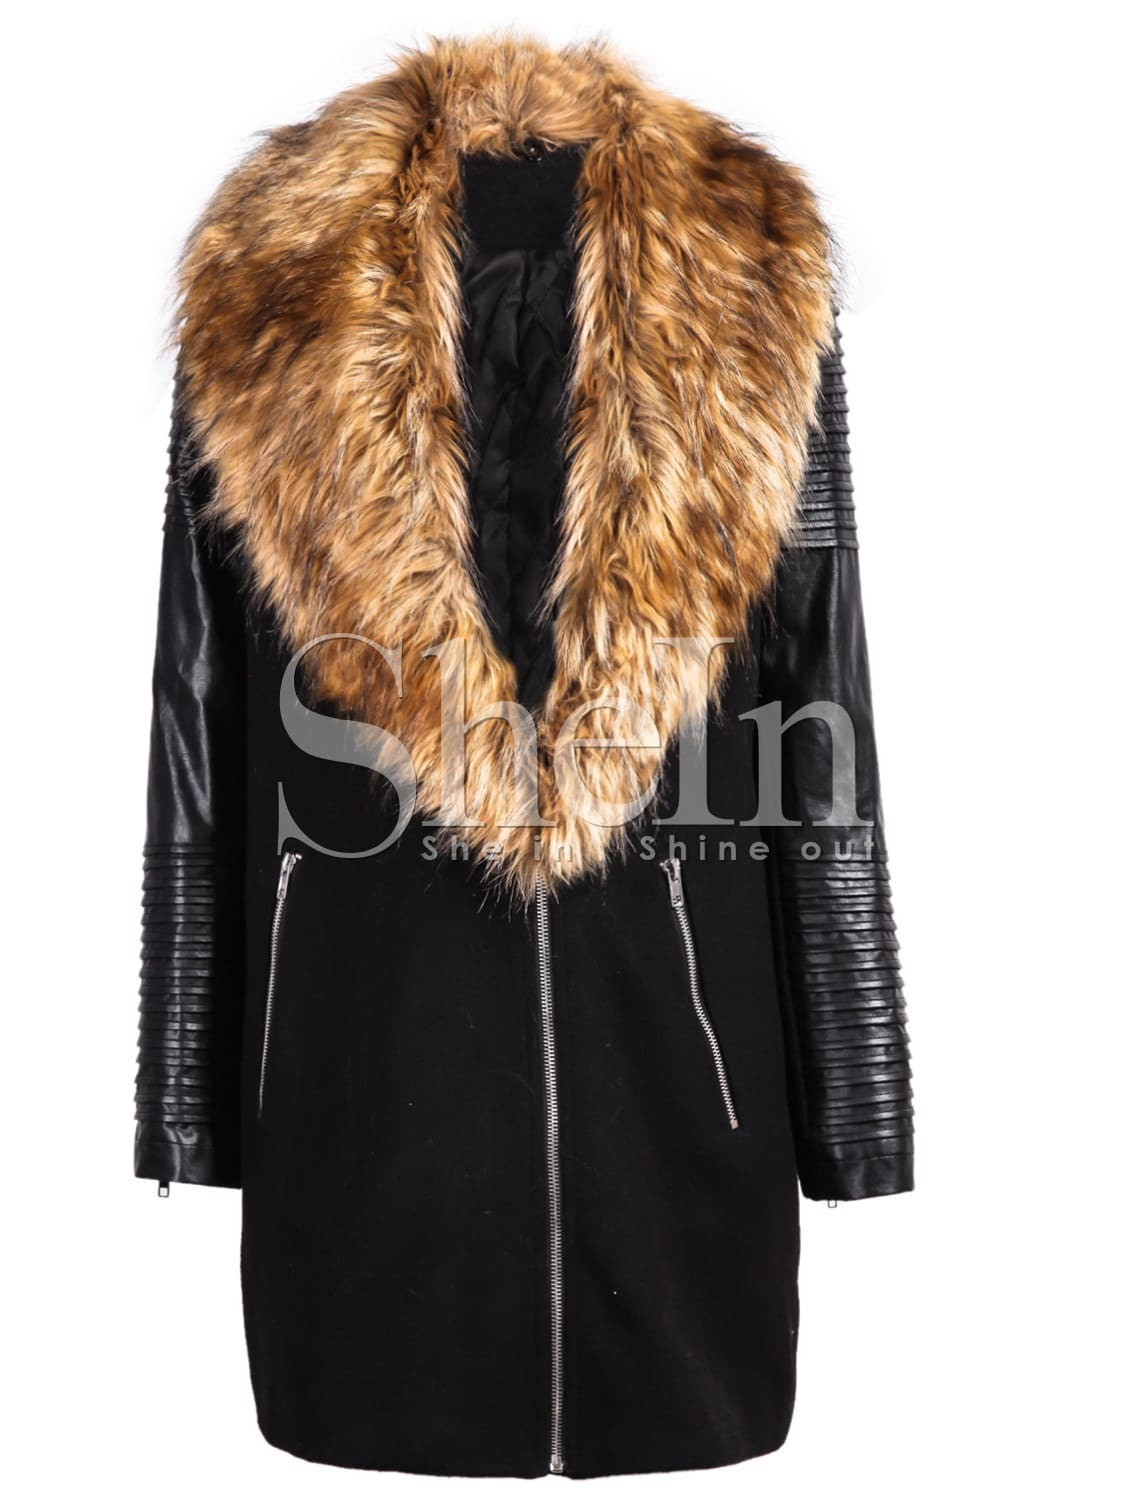 Black PU Leather Sleeve Faux Fur Lapel Coat -SheIn(Sheinside)